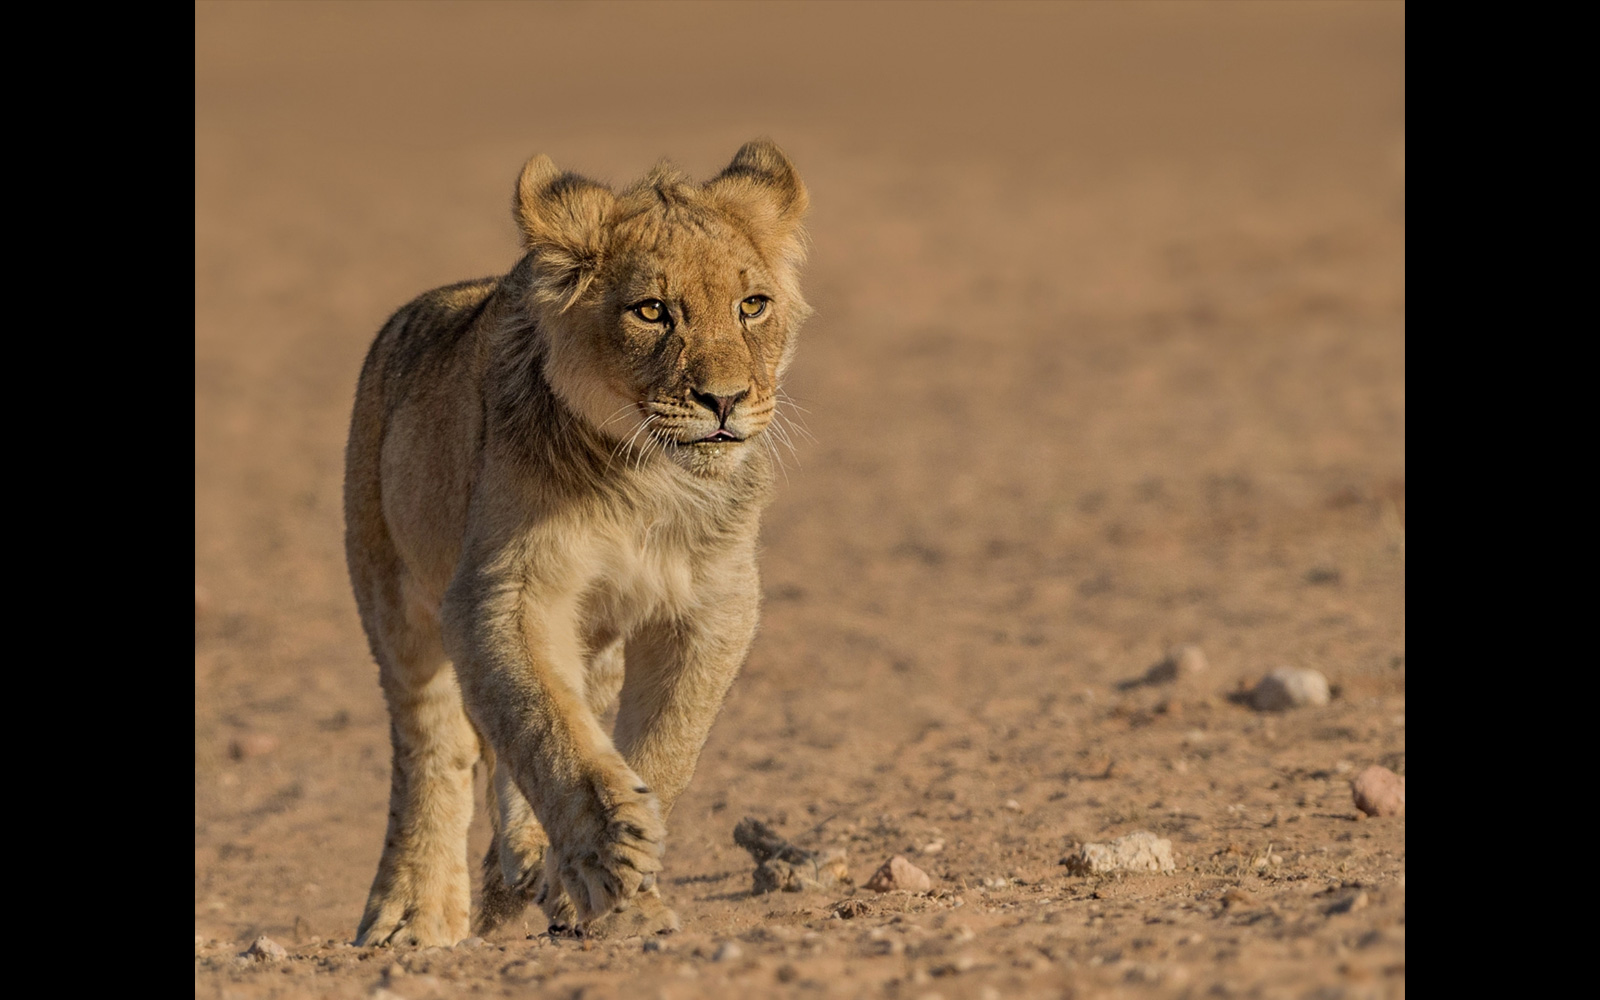 Lion cub running to his pride in  Kgalagadi Transfrontier Park, Botswana/South Africa © Marc de Chalain